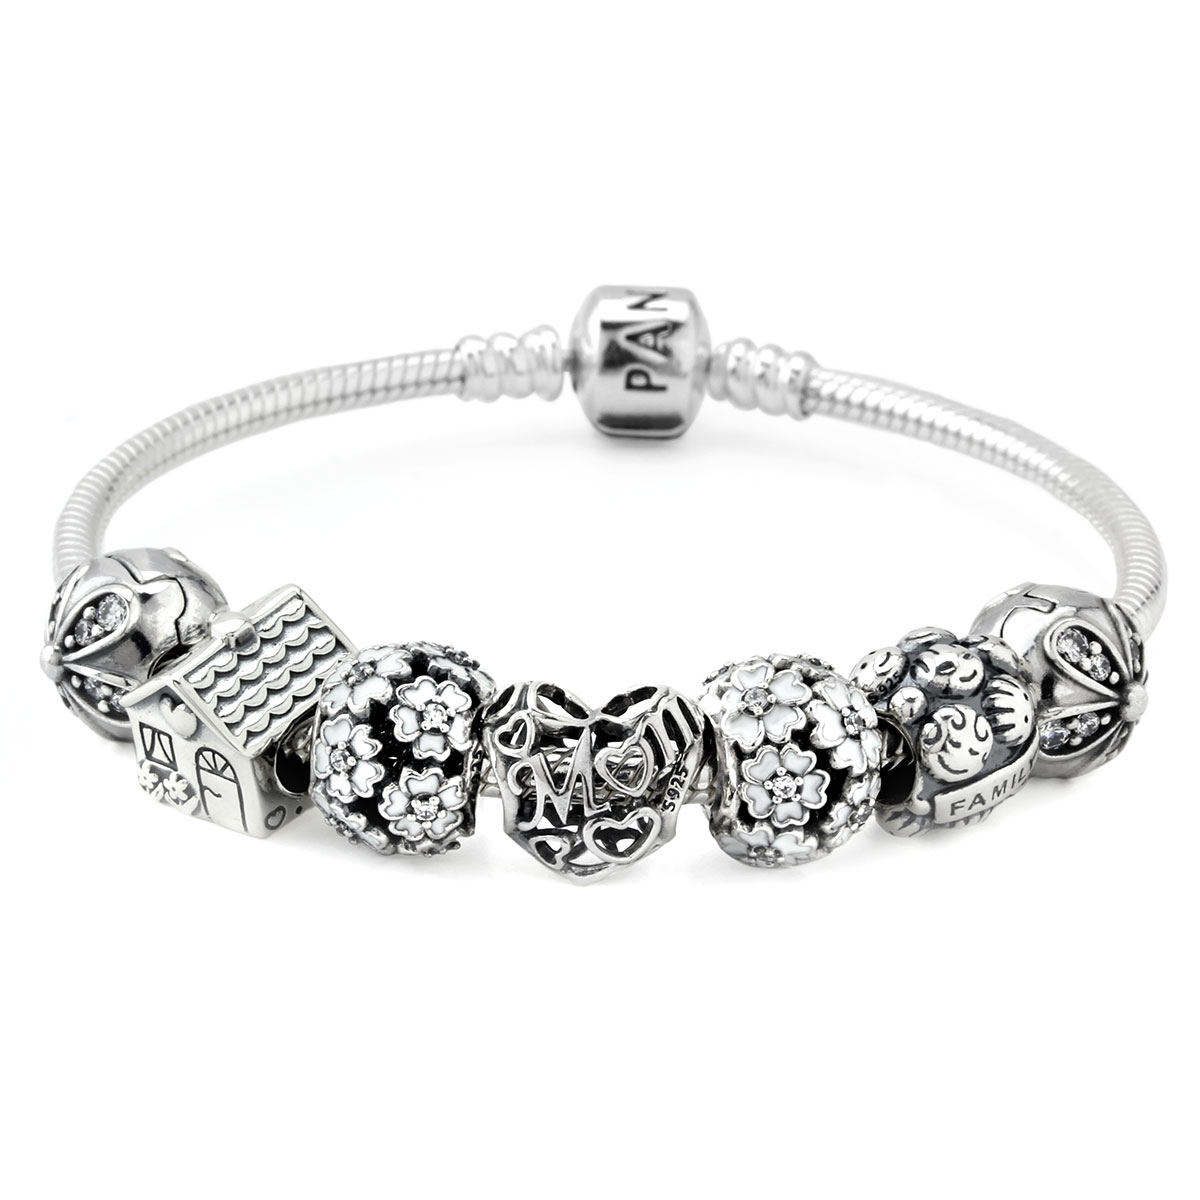 Pandora Bracelet Design Ideas pandora is that the name of brand name that has the general fame it had Pandora Bracelet Designs Ideas